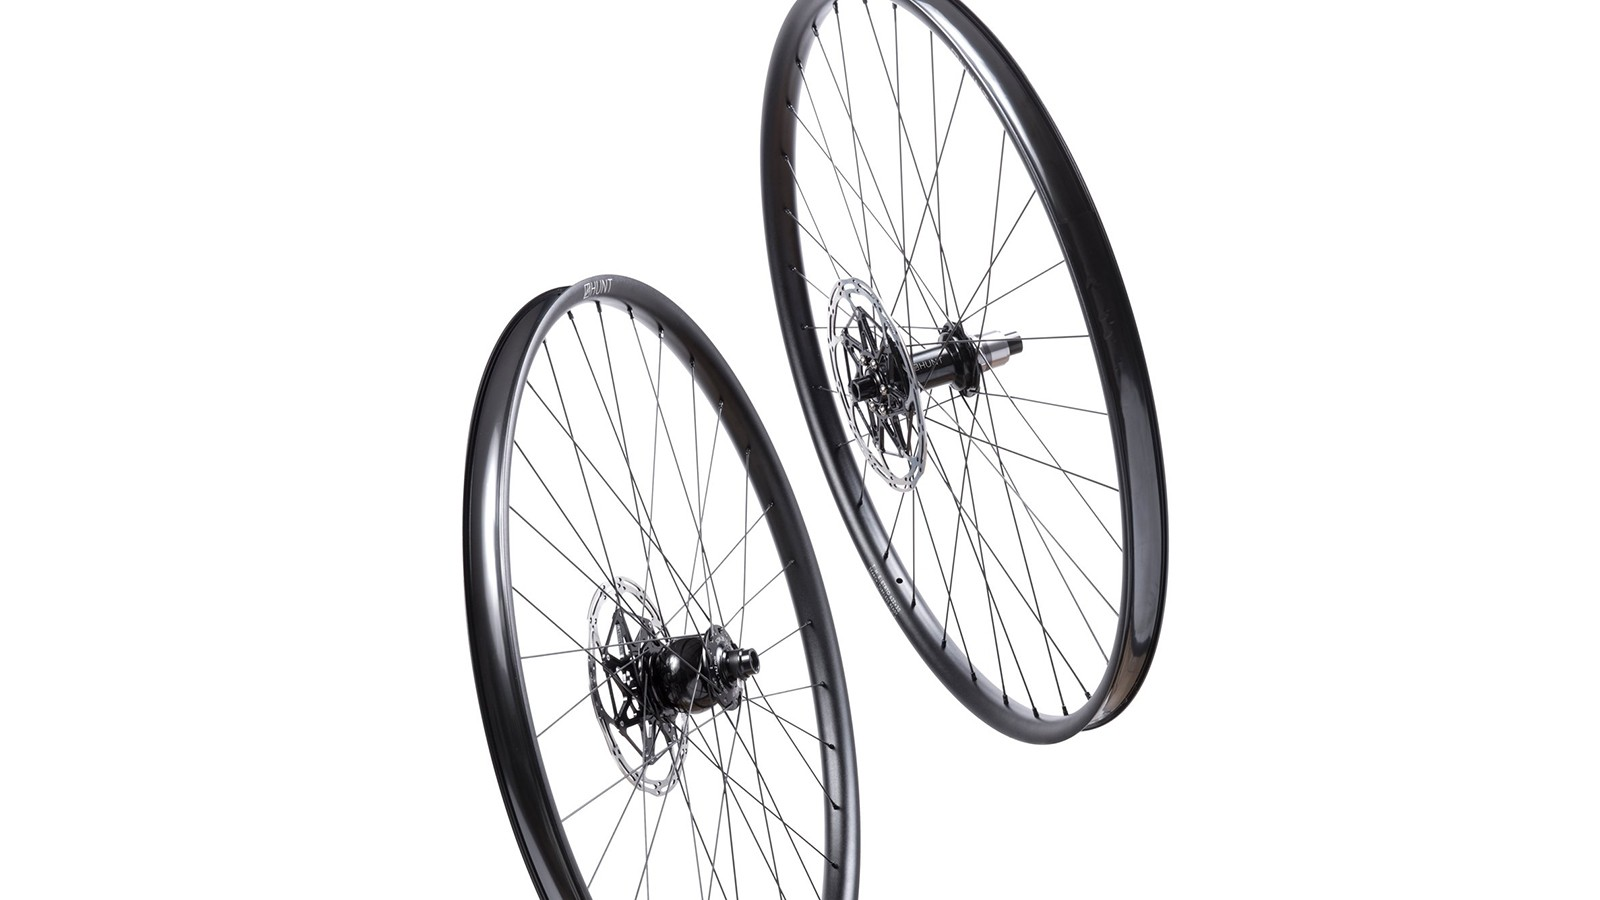 The new Hunt Search 29 Dynamo wheelset